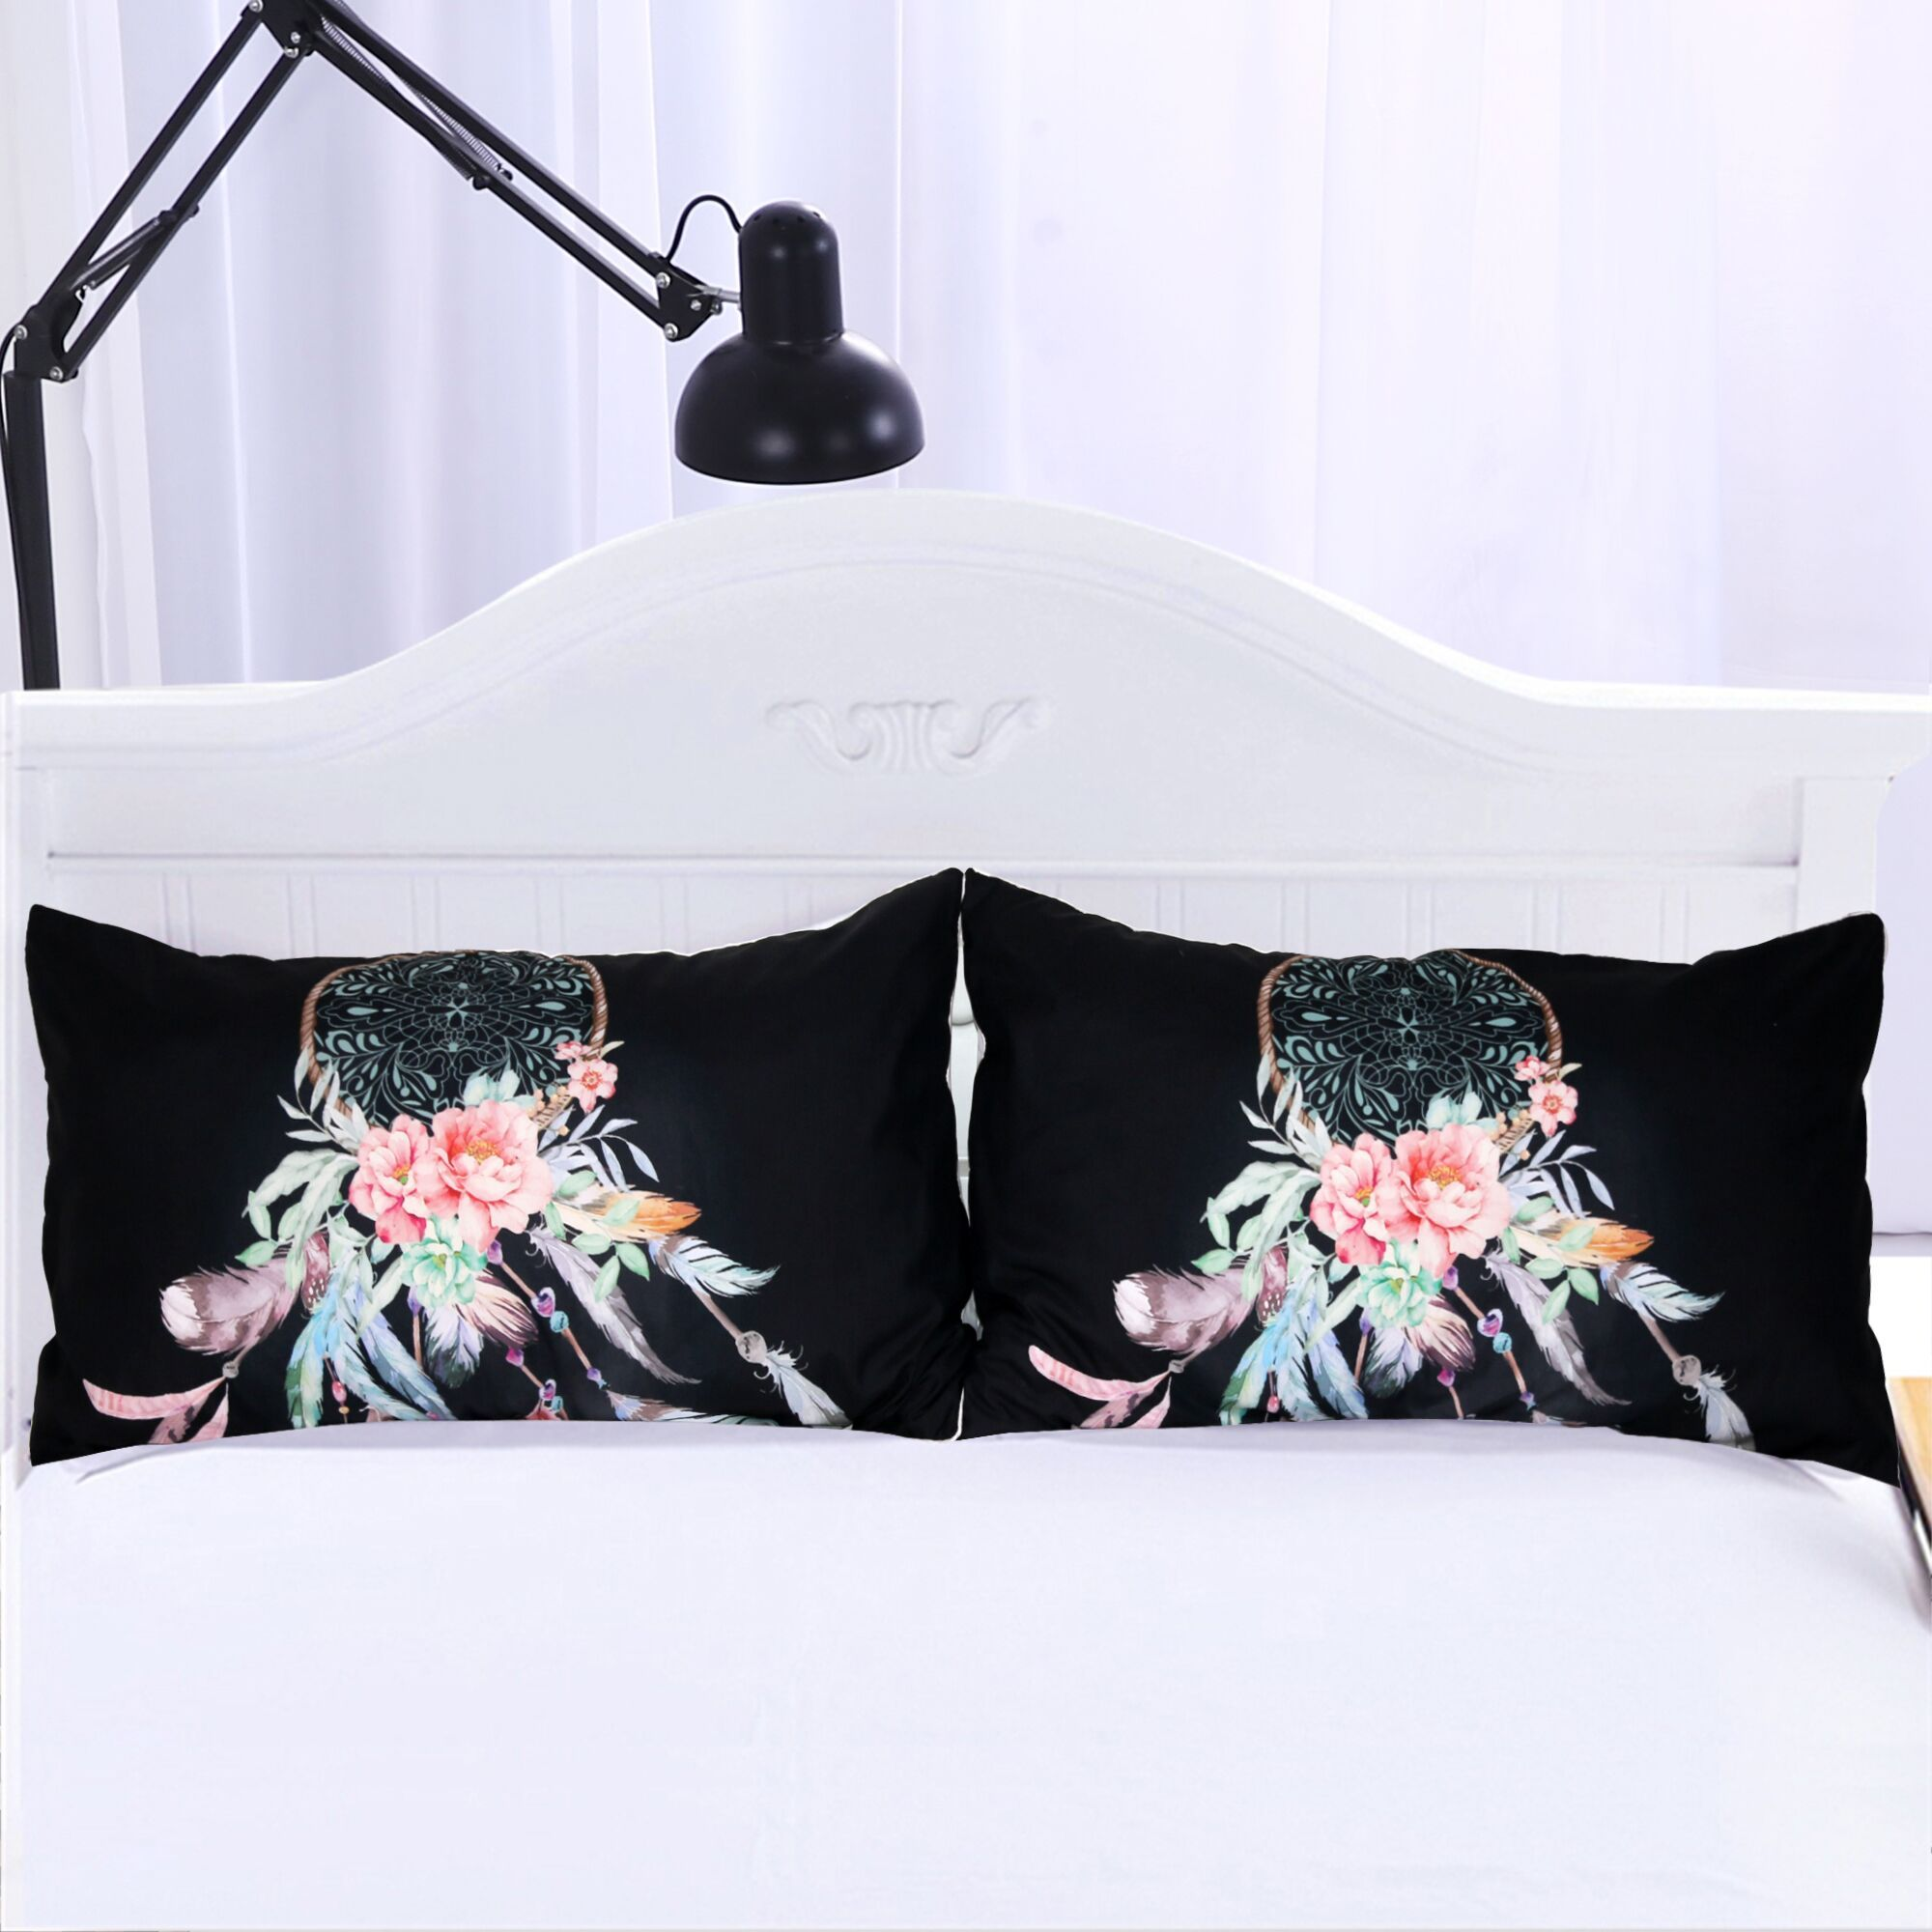 Big Dreamcatcher Pillowcases- Set of 2